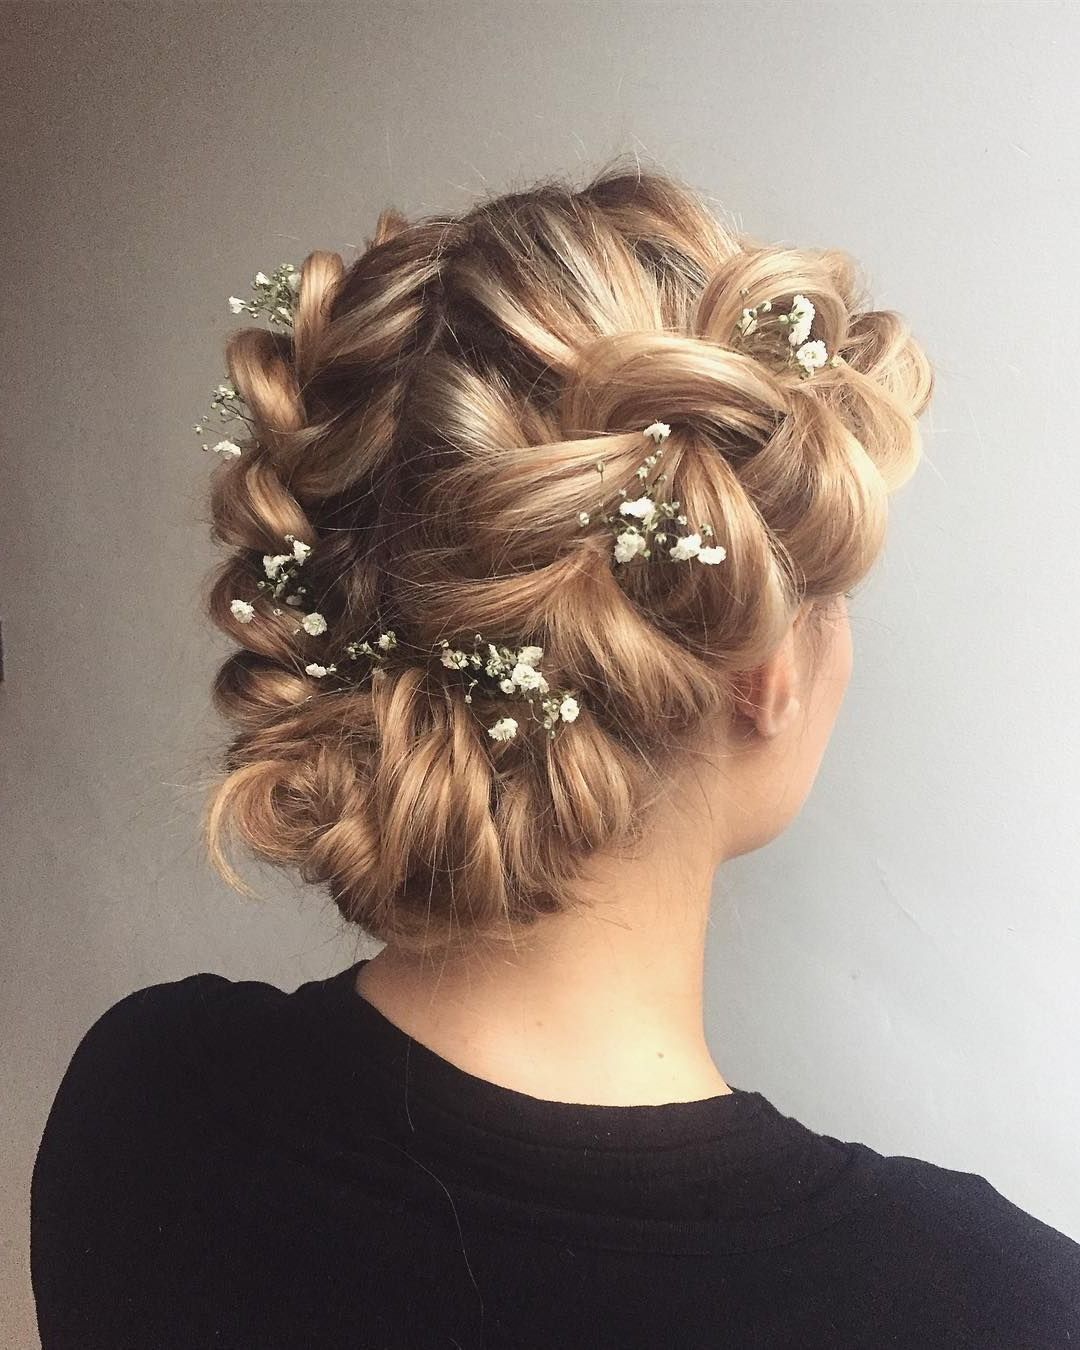 Bridal Crown Braid Hairstyle,textured Updo, Updo Wedding Pertaining To Newest Messy Crown Braided Hairstyles (View 9 of 20)